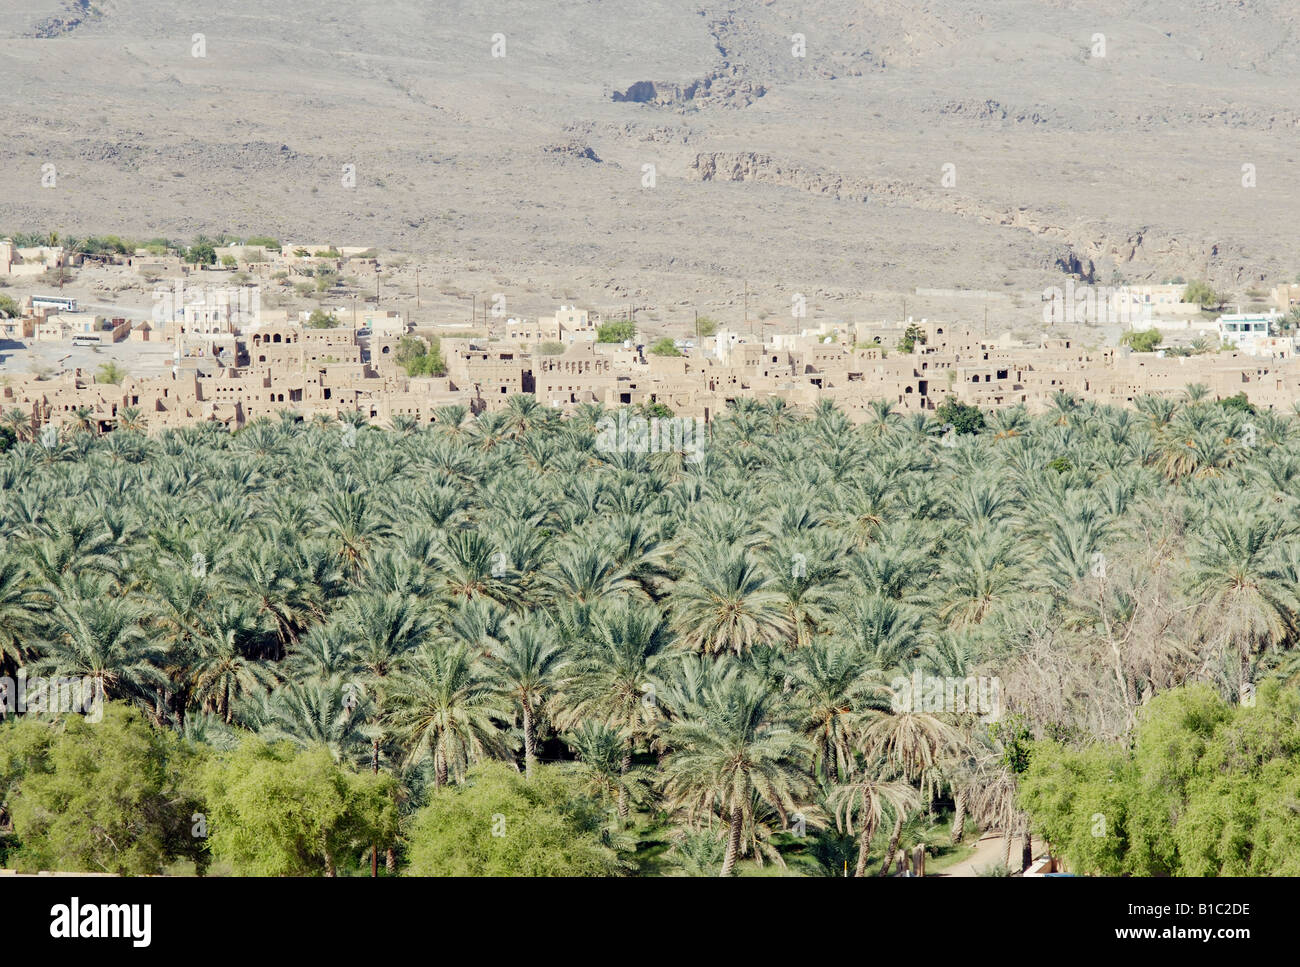 geography / travel, Oman, Al-Hamra, city views / cityscapes, oasis with palm trees, Additional-Rights-Clearance - Stock Image